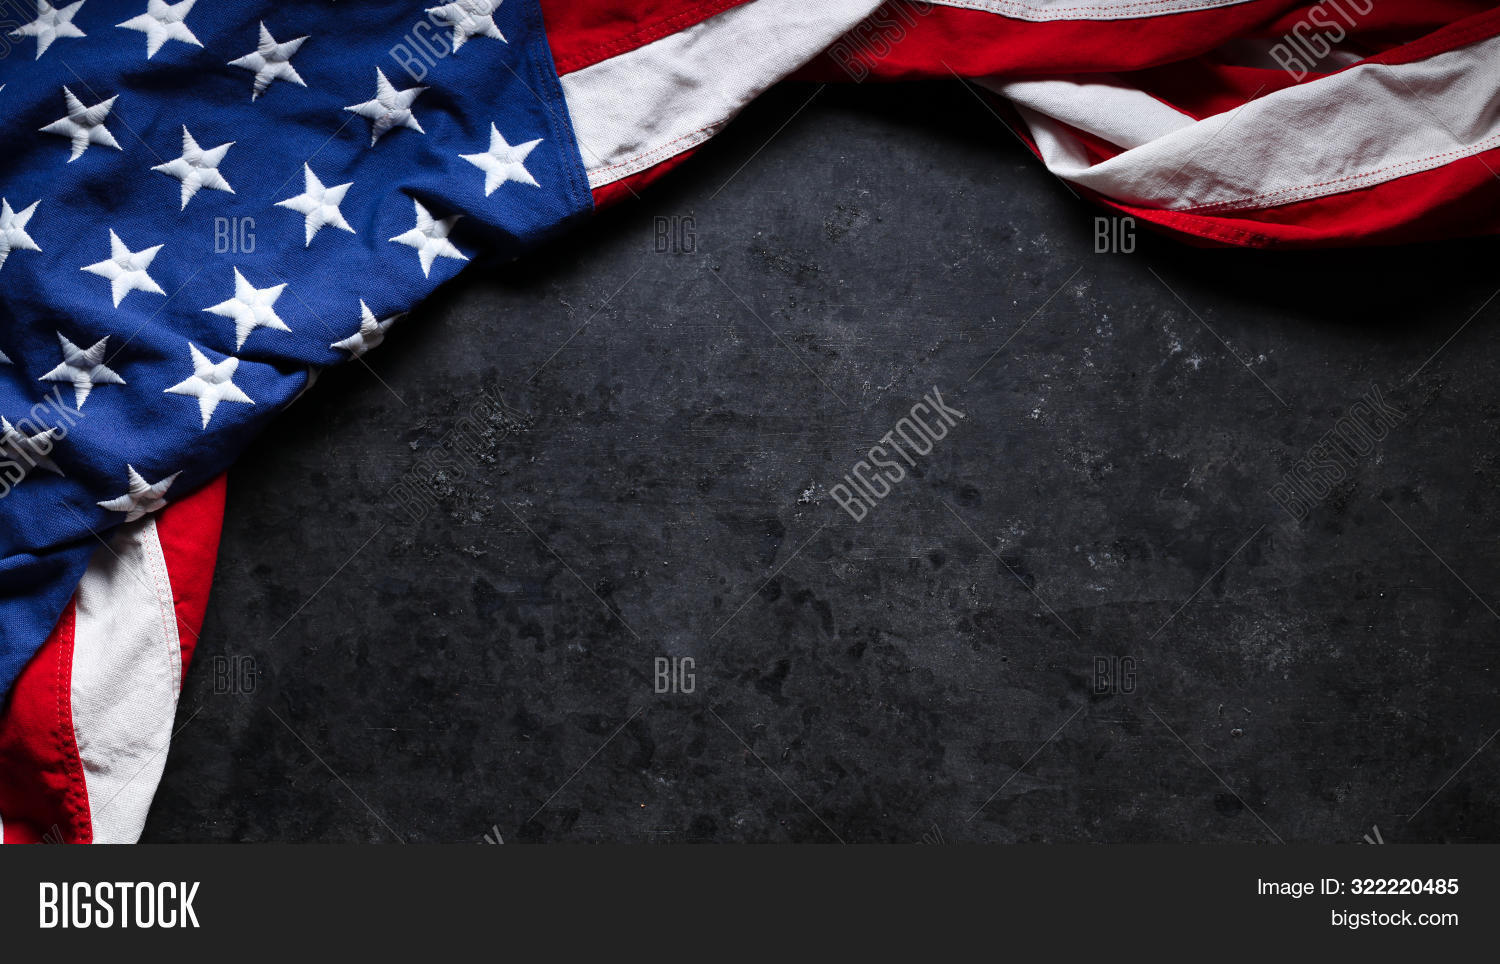 4th,america,american,armed forces day,background,blank,copy space,country,dark,democracy,election,flag,fourth,freedom,holiday,independence,independent,july,labor,labor day,memorial,memorial day,nation,national,patriotic,patriotism,space,states,us,usa,veteran,veterans,veterans day